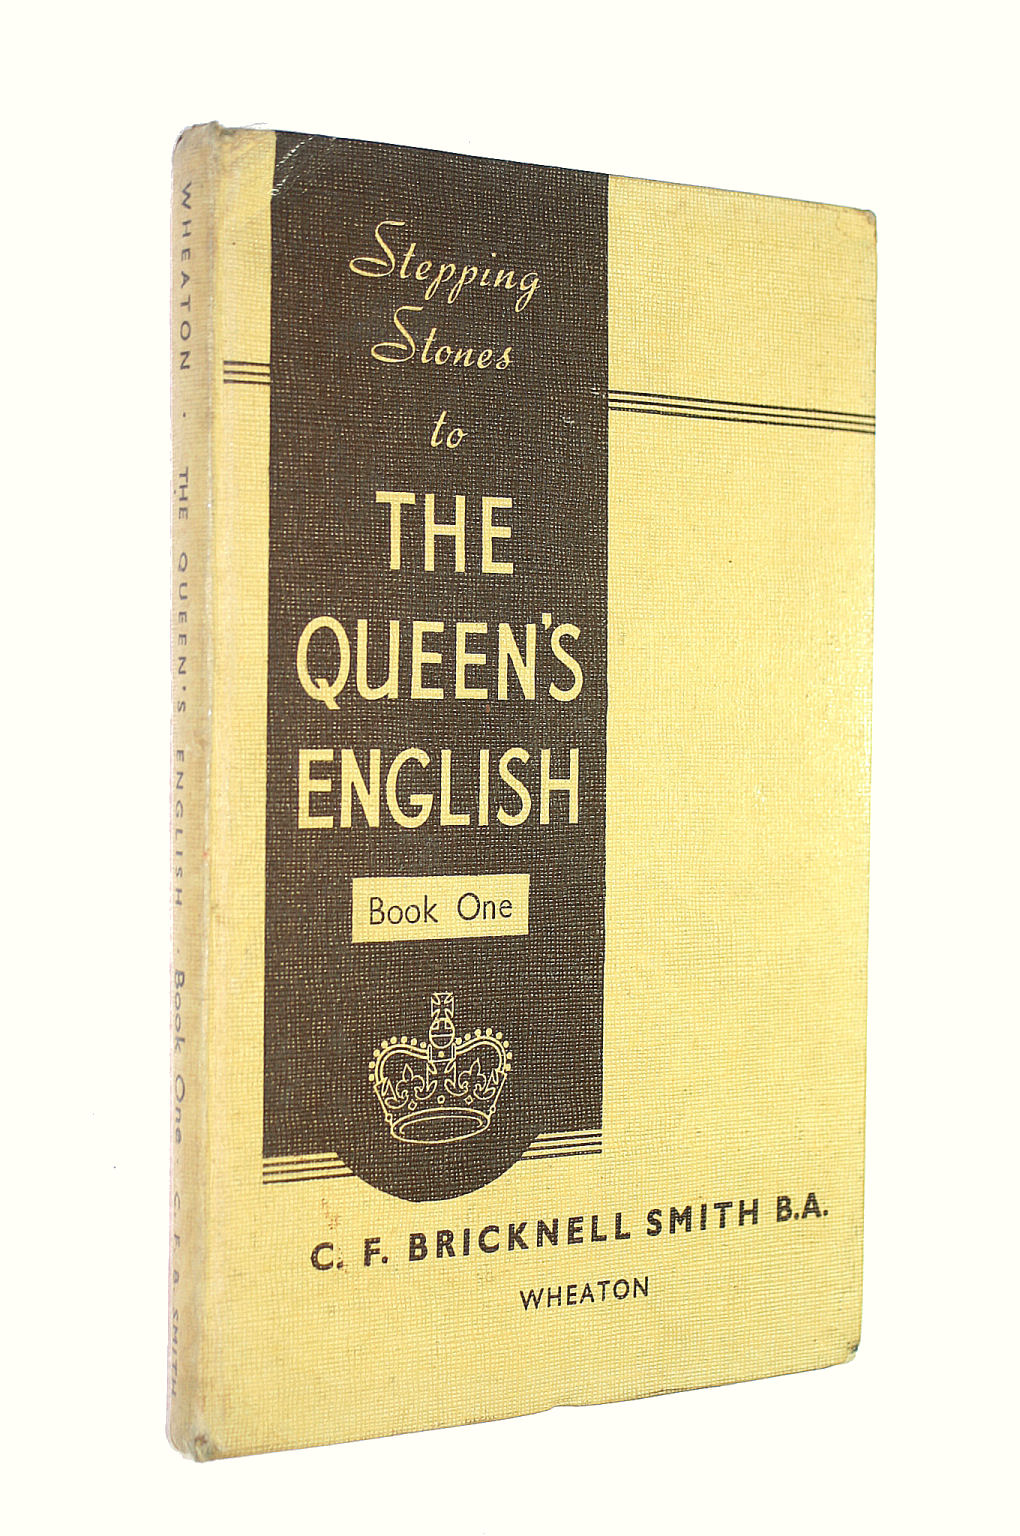 Image for Stepping stones to the Queen's English